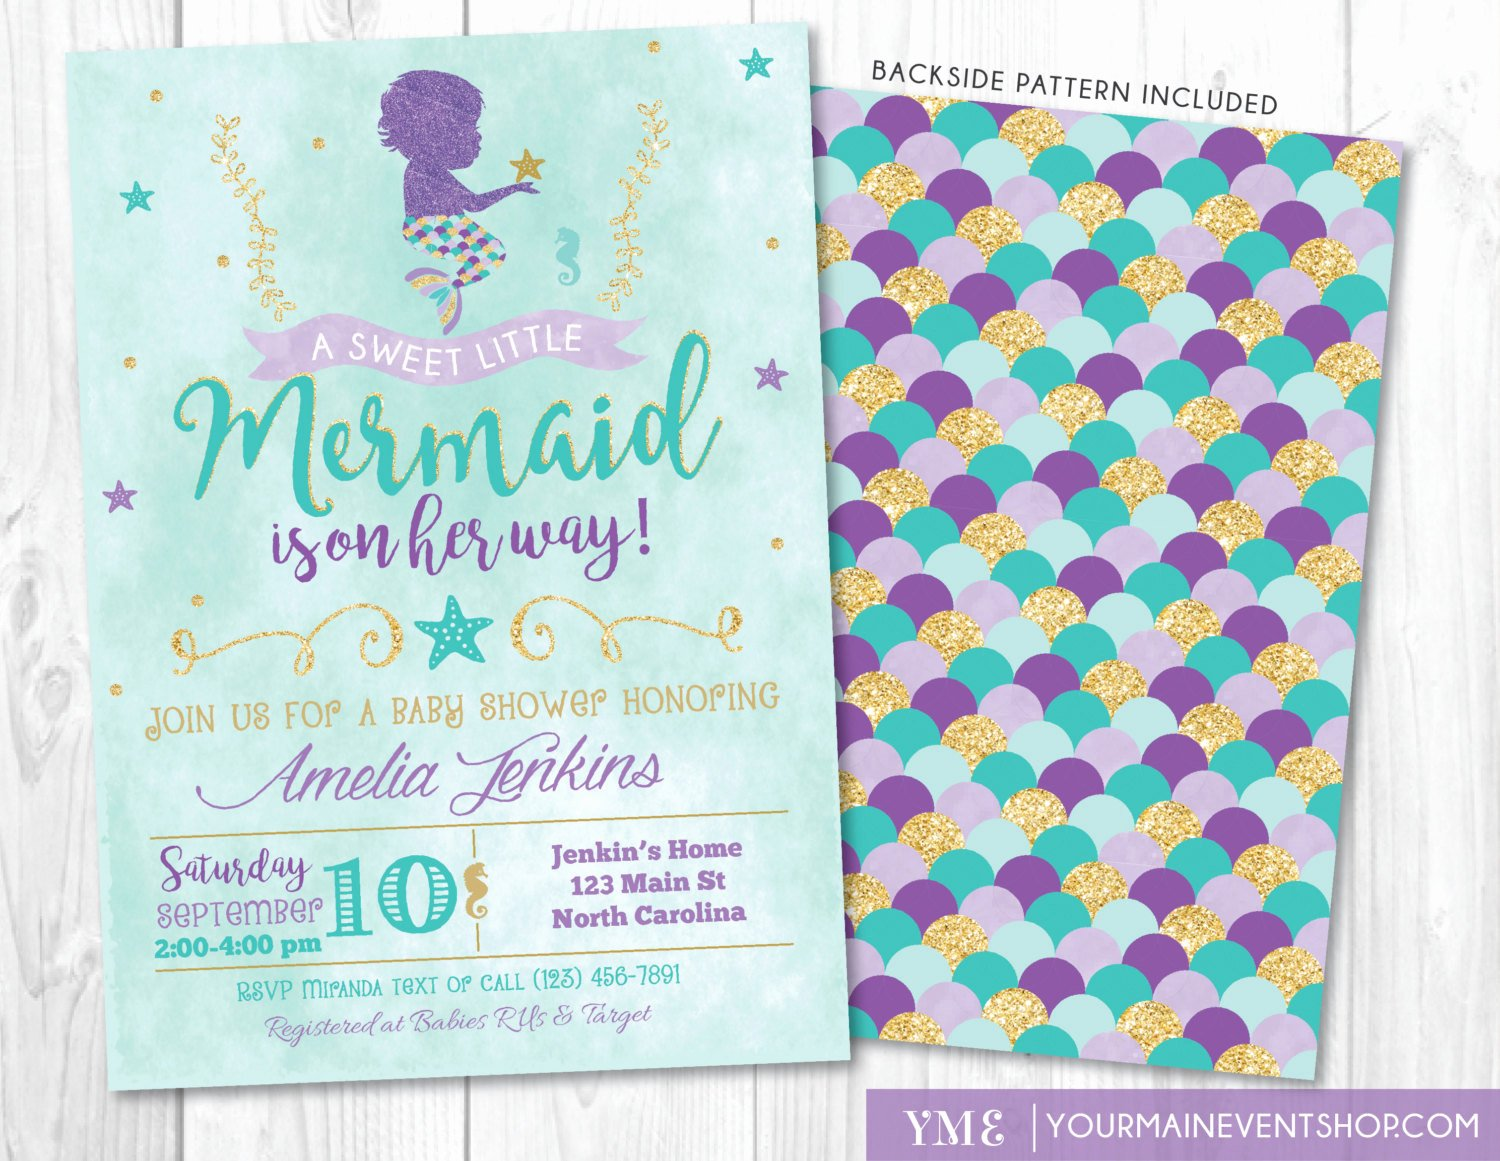 Mermaid Baby Shower Invitations Inspirational Mermaid Baby Shower Invitation Little Mermaid Invite Under